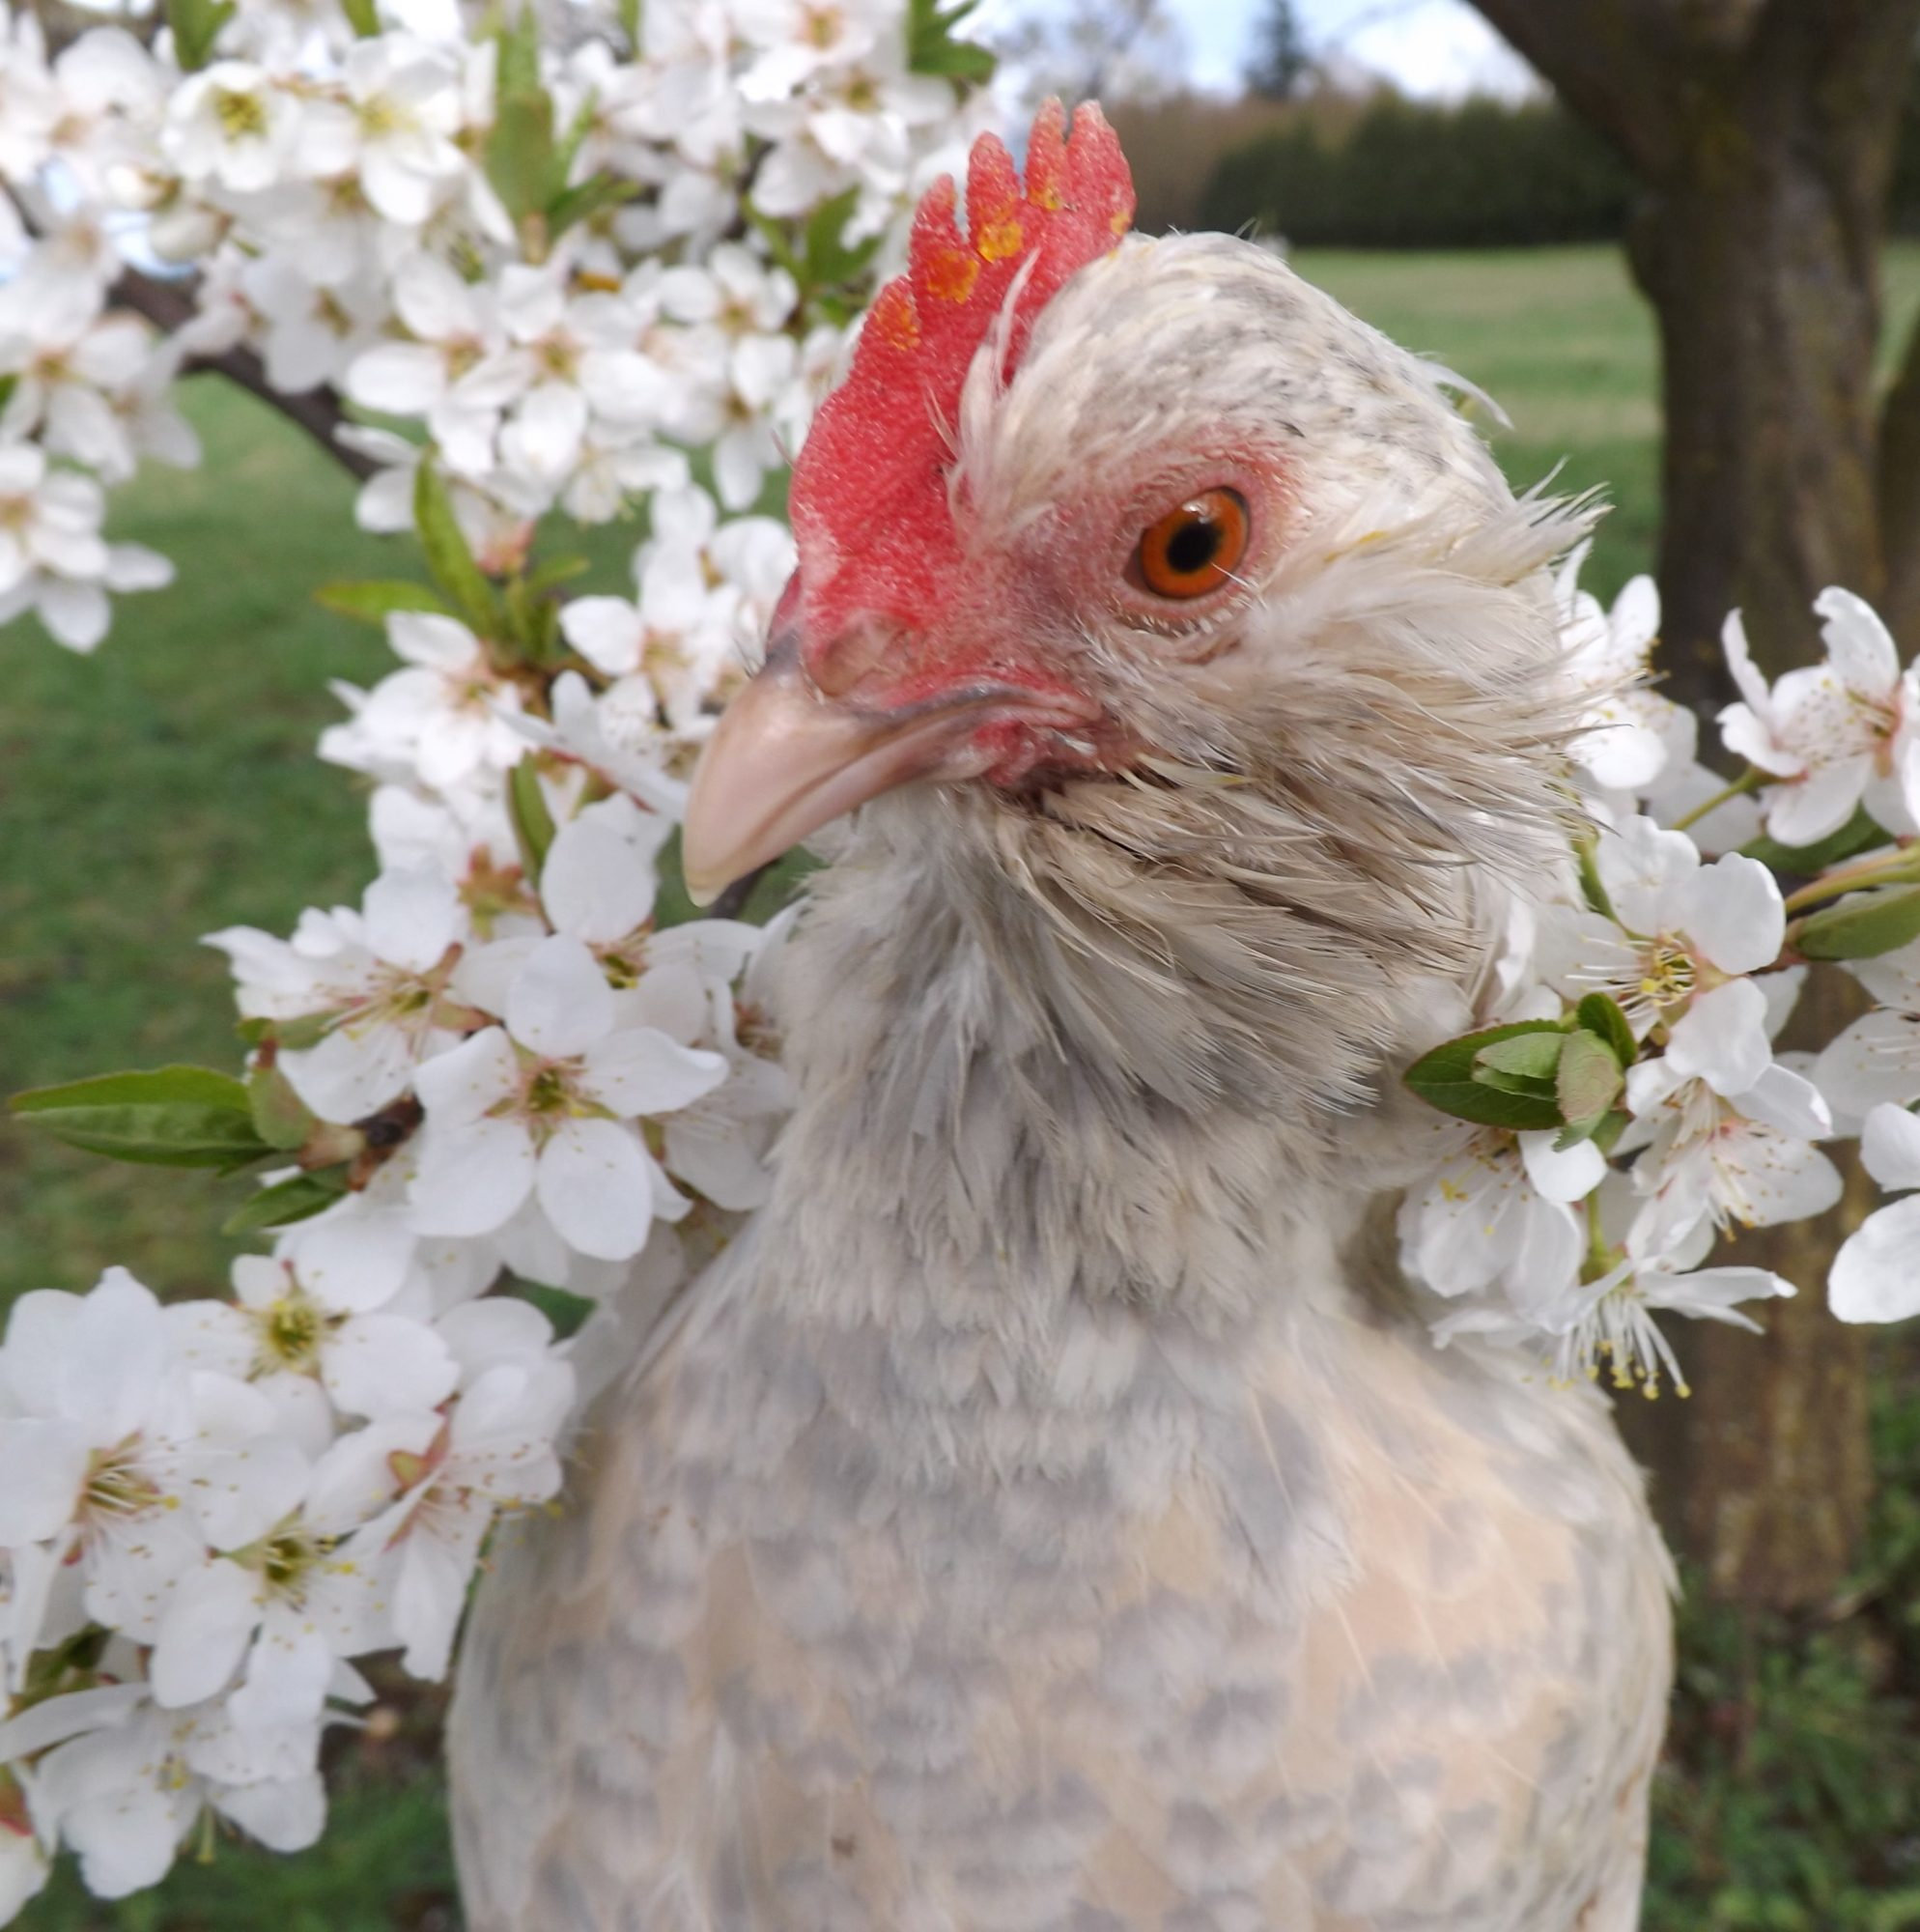 How to take good photographs of your chickens backyard chickens add beautiful surroundings my main thing im talking about it flowers as they are a natural beauty and make amazing pictures when chickens are next to izmirmasajfo